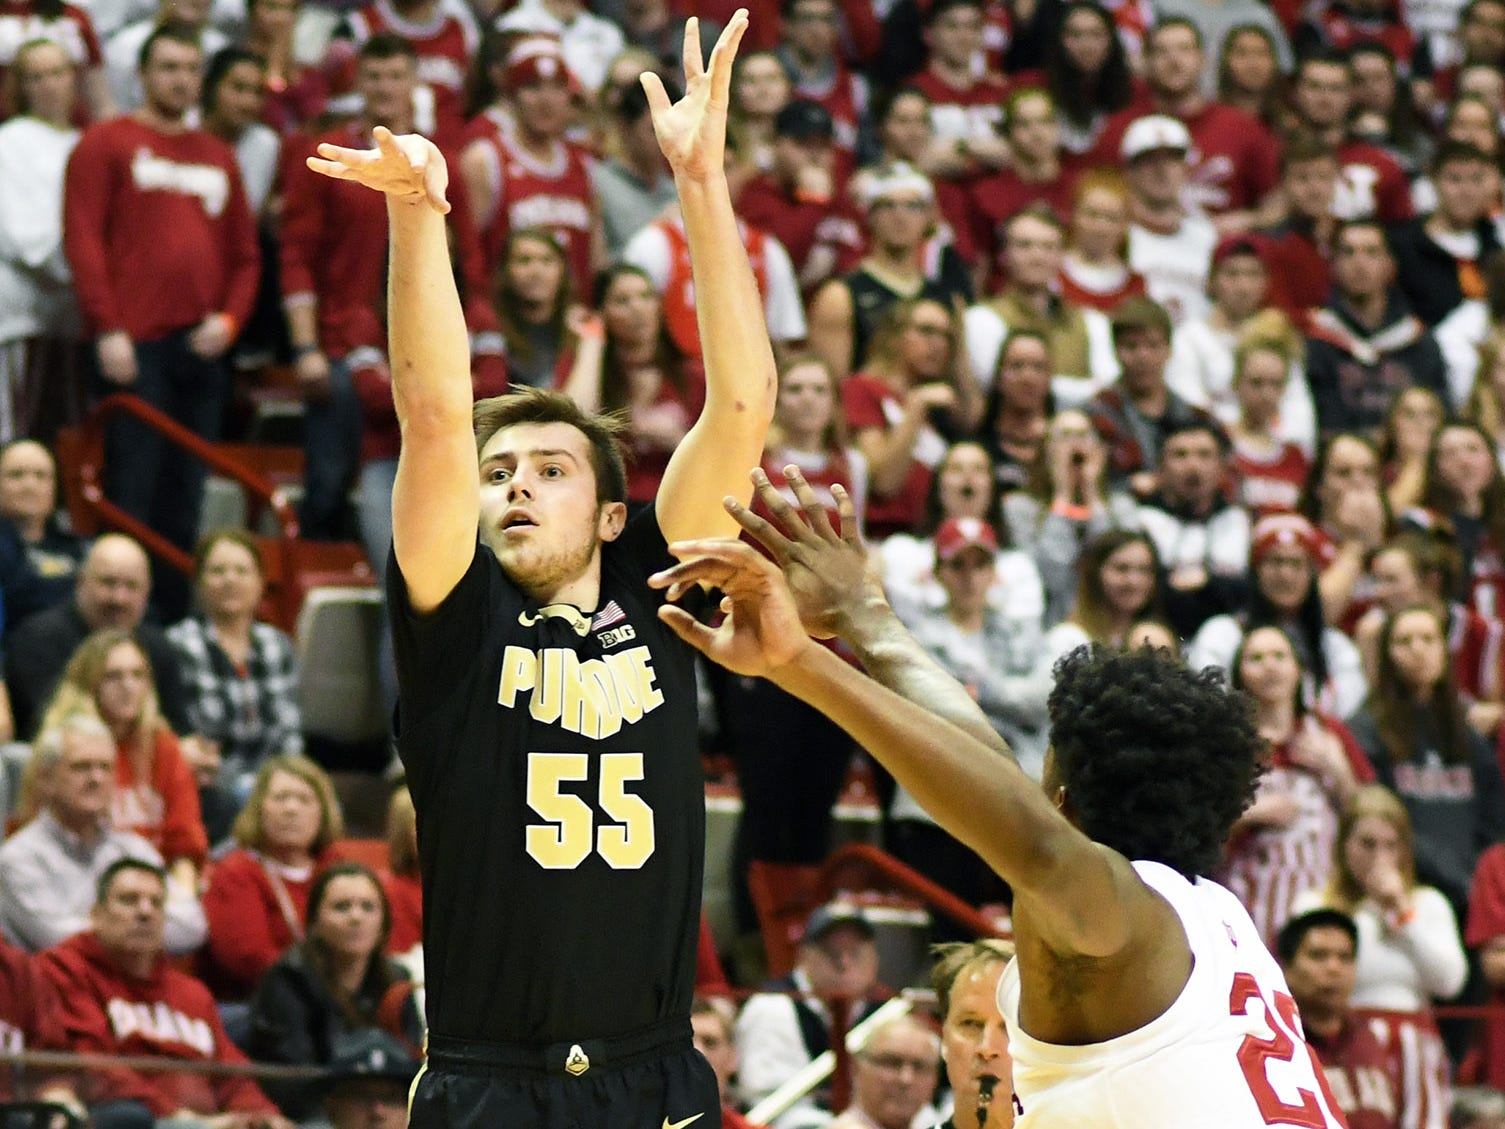 Purdue Boilermakers guard Sasha Stefanovic (55) shoots the ball during the game against Indiana at Simon Skjodt Assembly Hall in Bloomington, Ind., on Tuesday, Feb. 19, 2019.